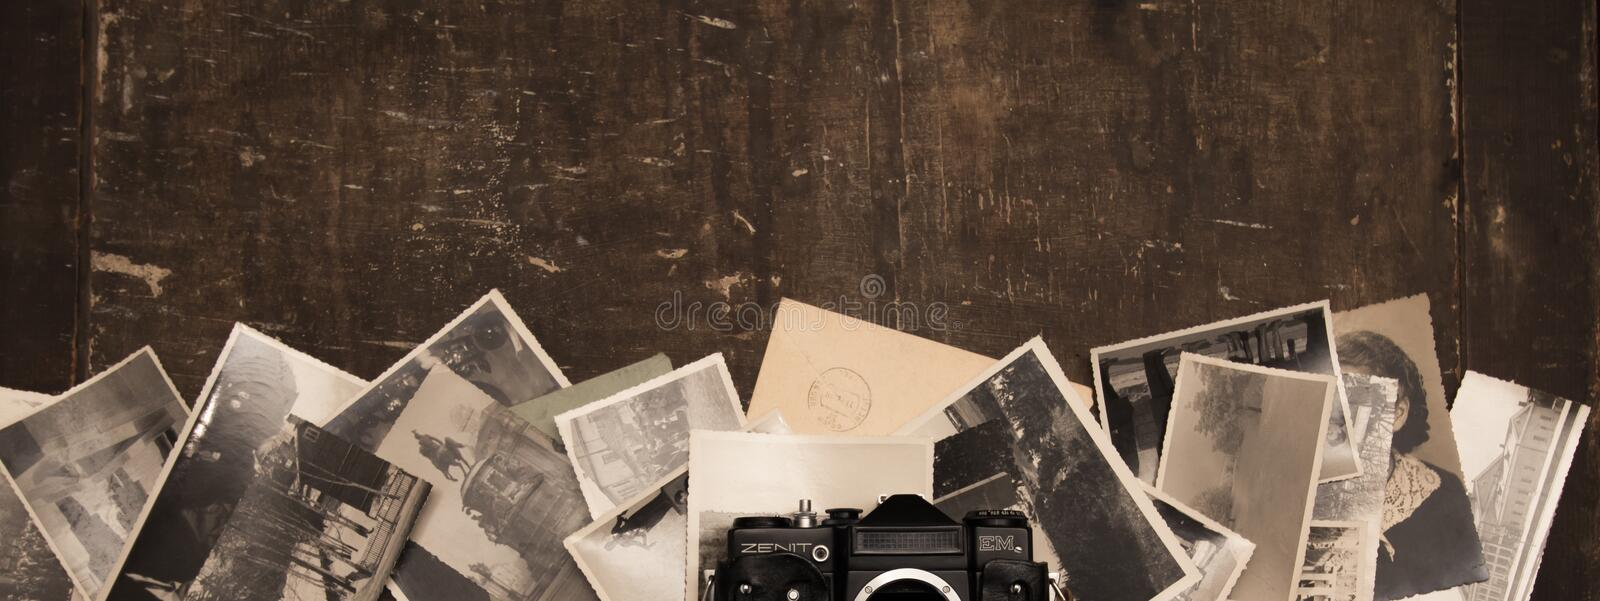 Vintage photos on the old background, with a camera zenith royalty free stock photos